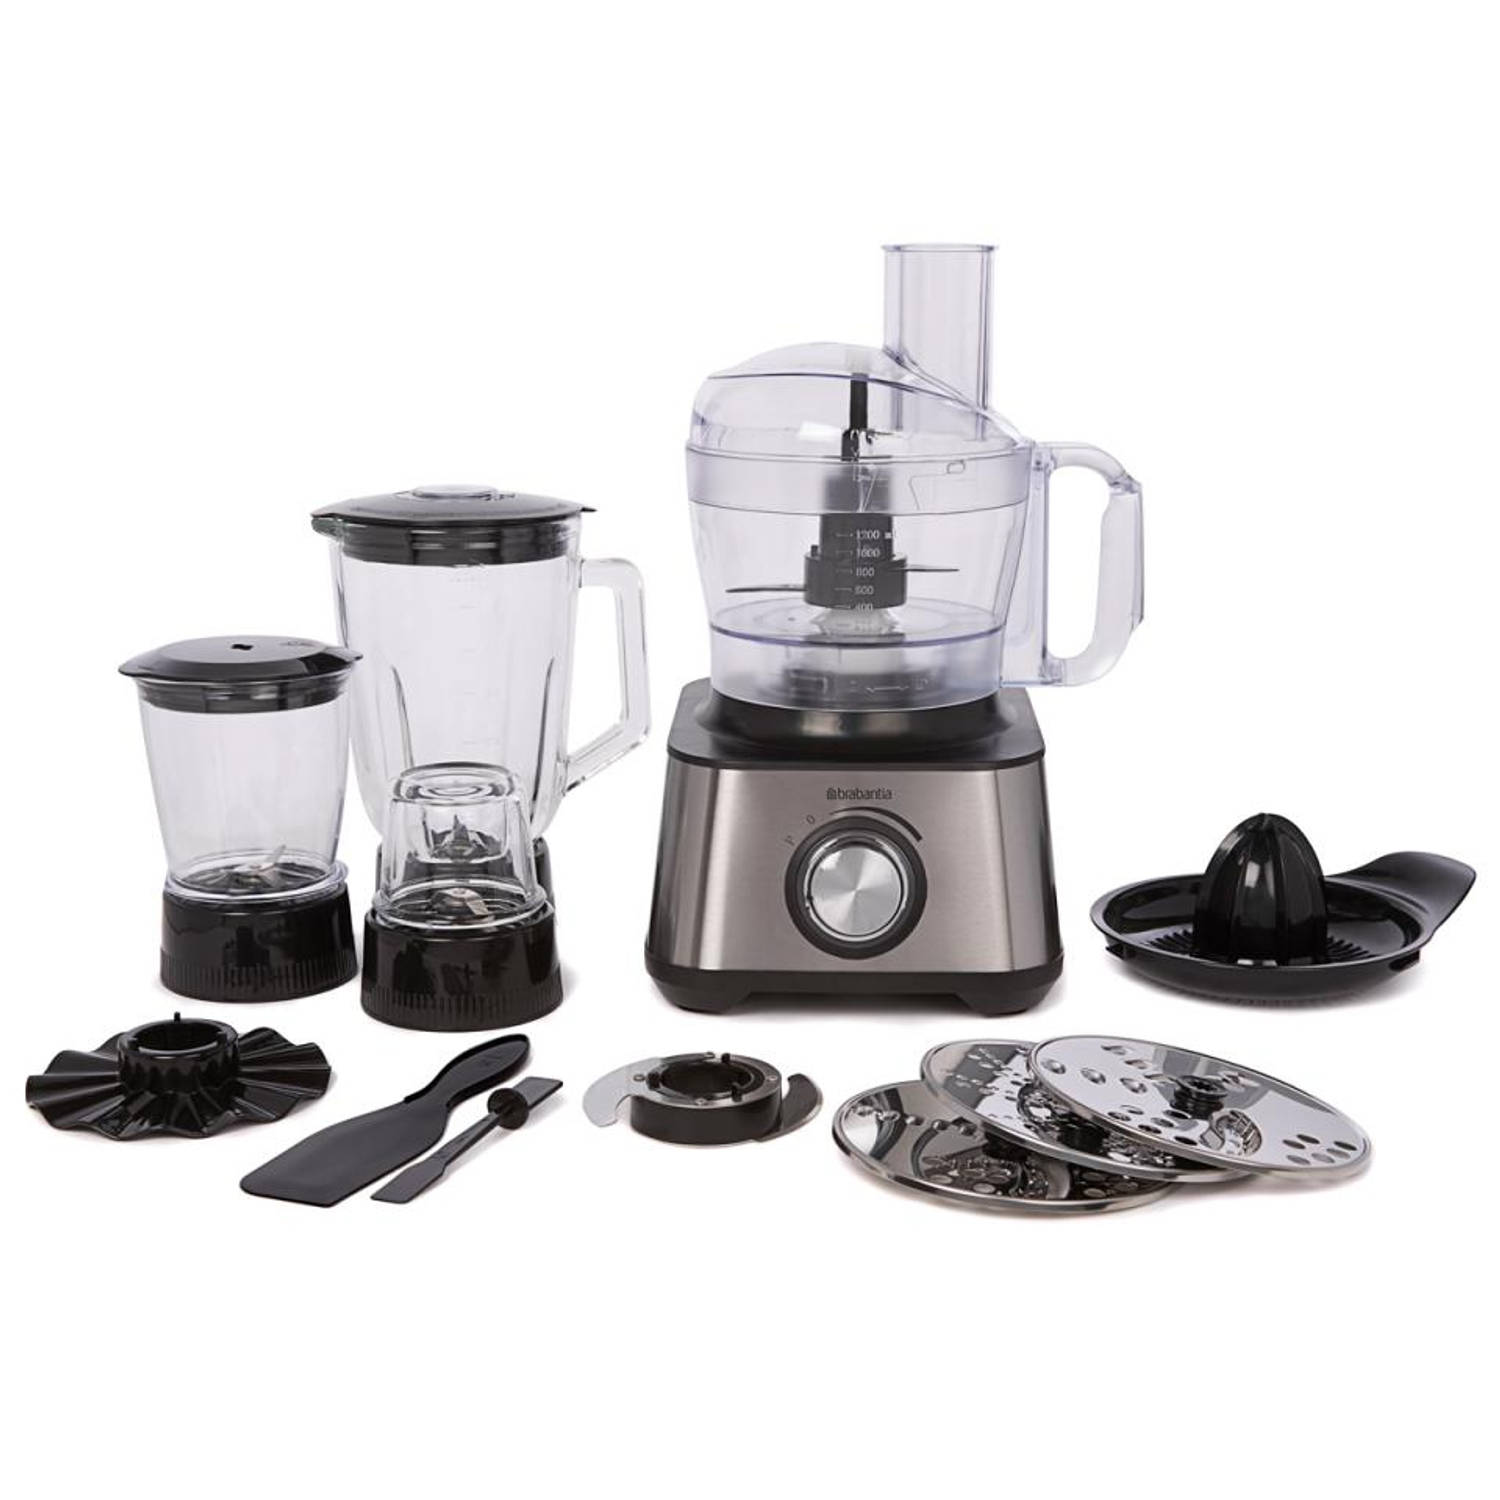 Brabantia food processor BBEK1113B RVS